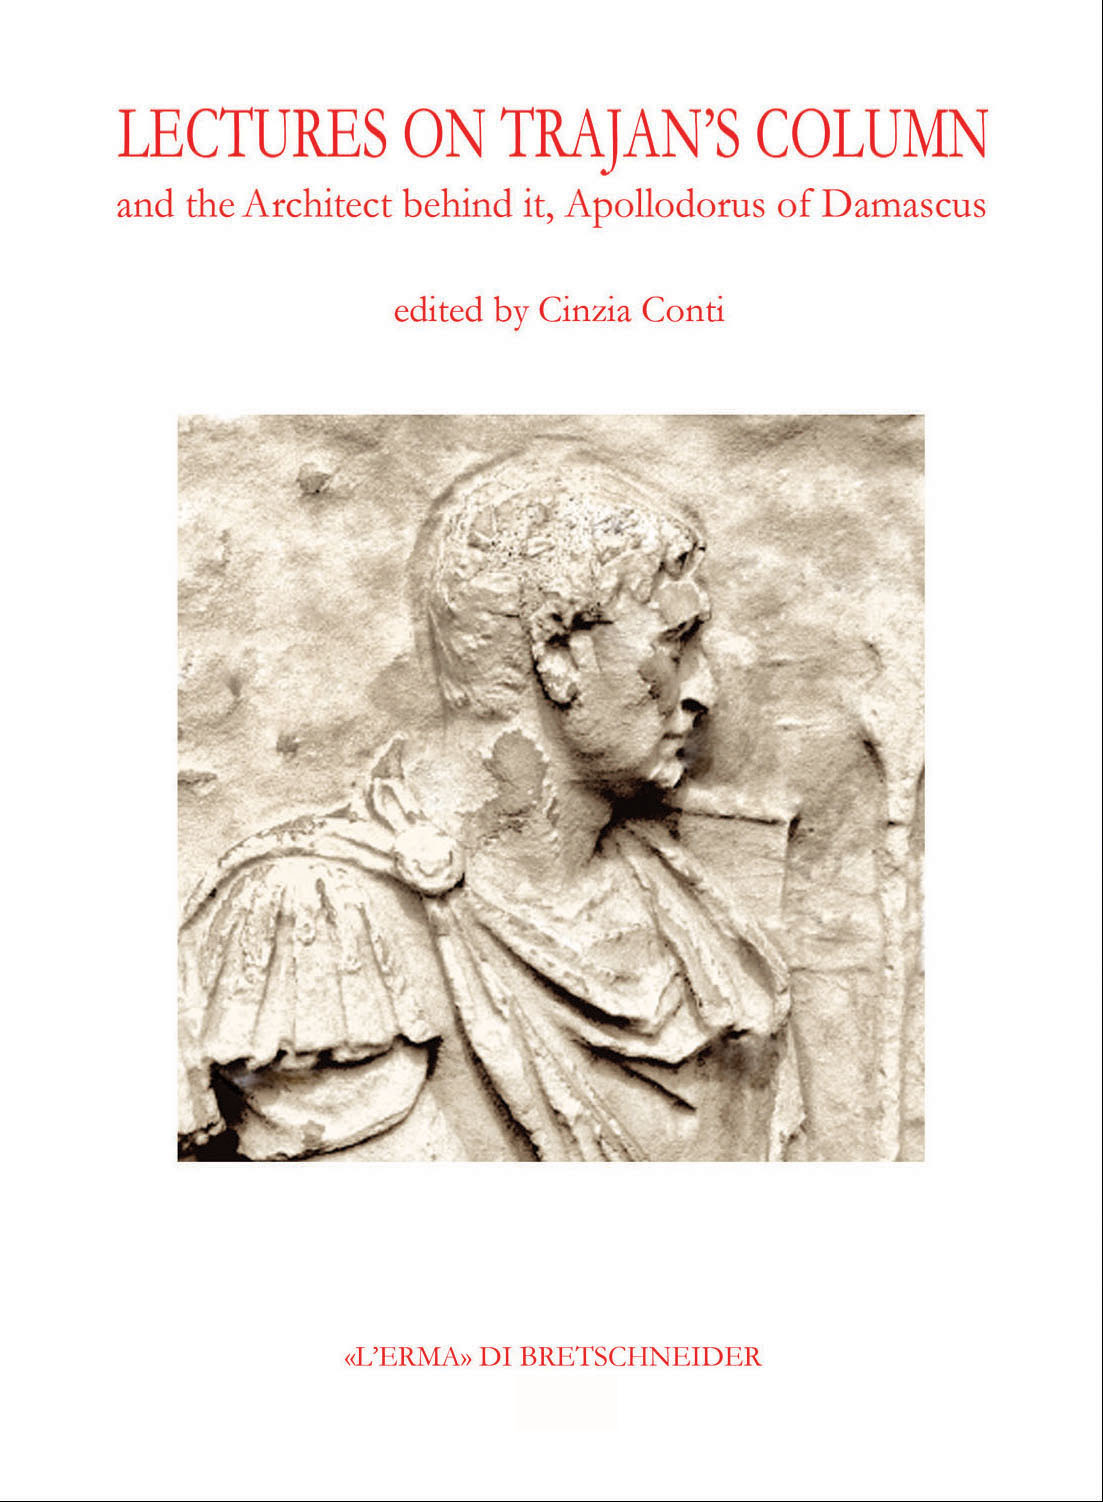 Lectures on Trajan's Column and the Architect behind it: Apollodorus of Damascus